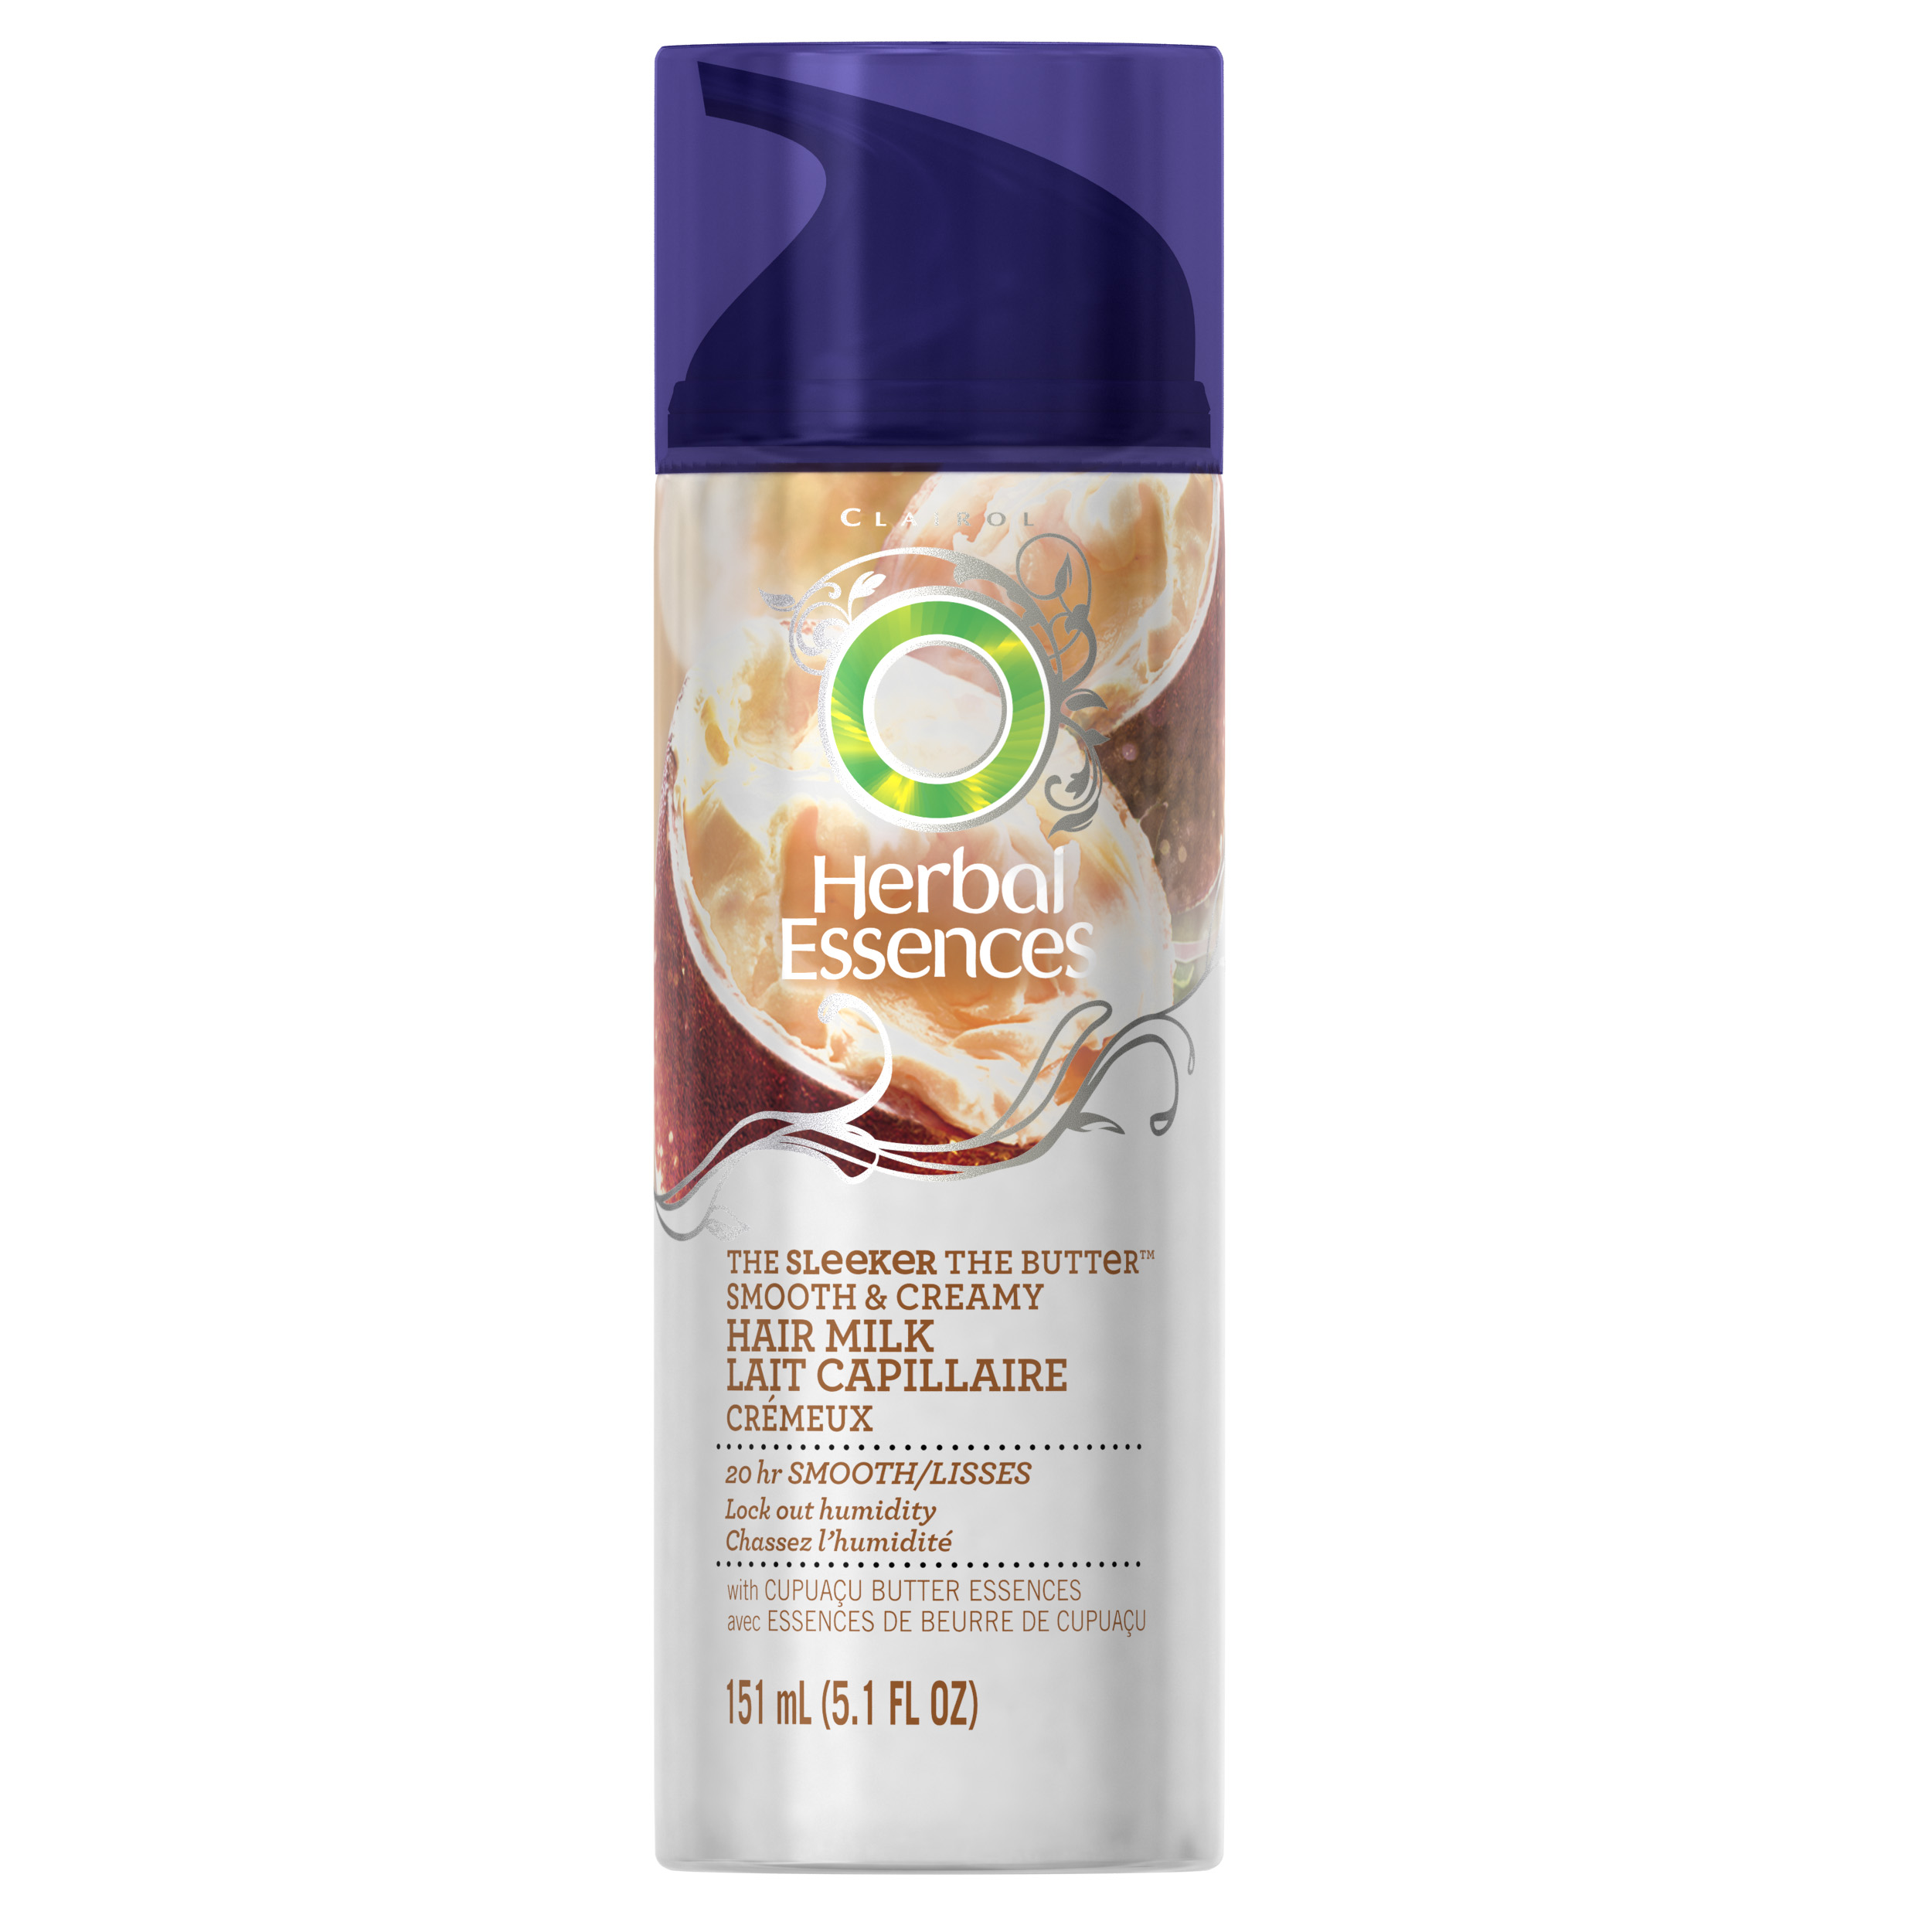 Herbal Essences The Sleeker The Butter Smooth & Creamy Hair Milk